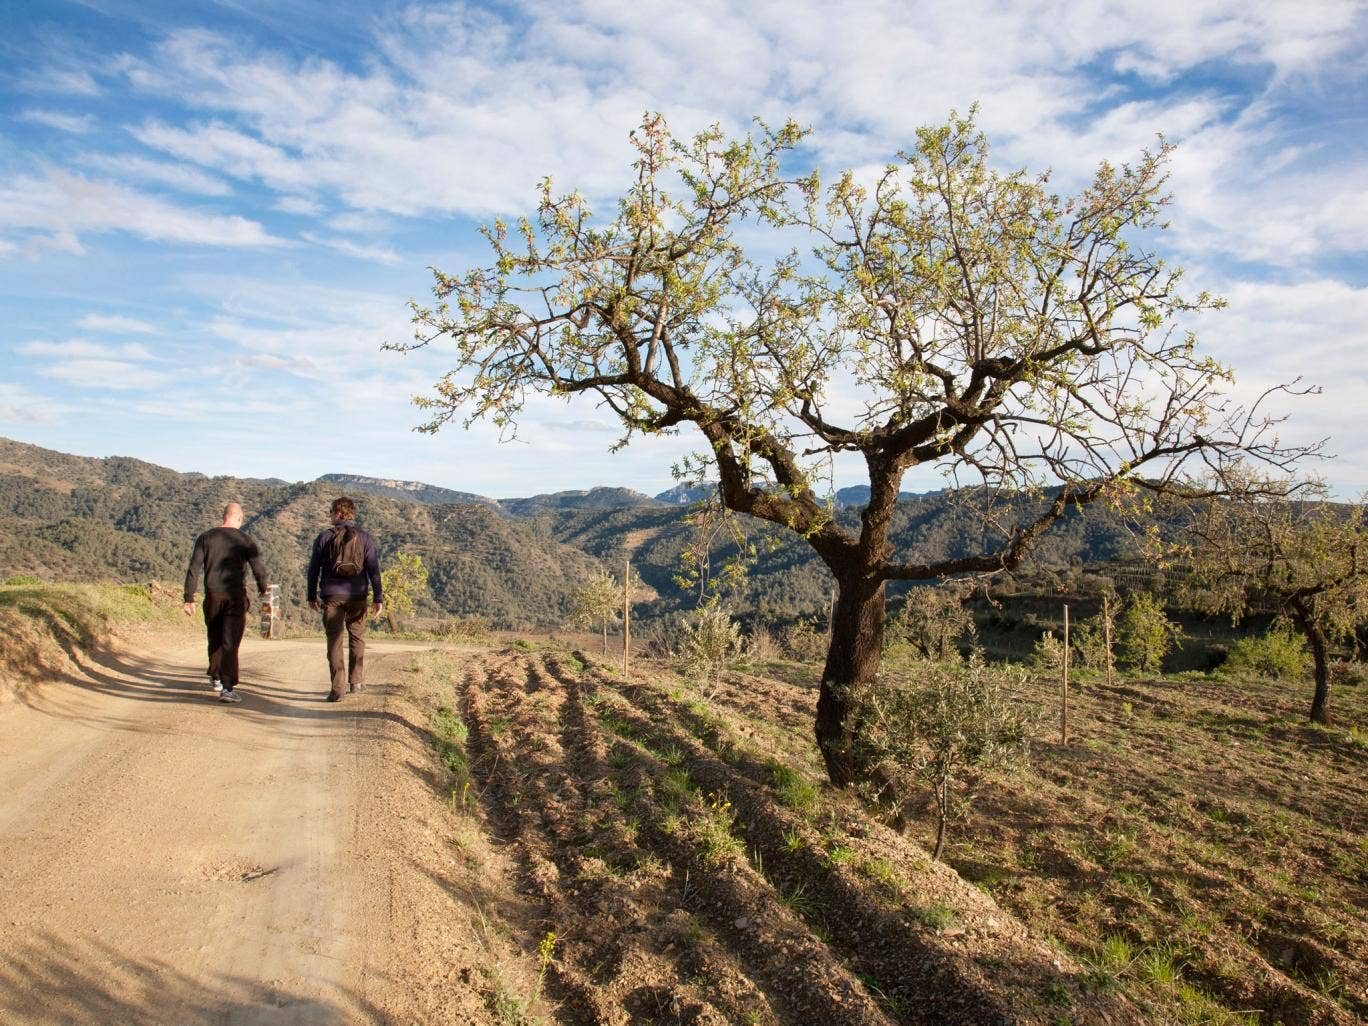 The hills and valleys of Priorat in Spain